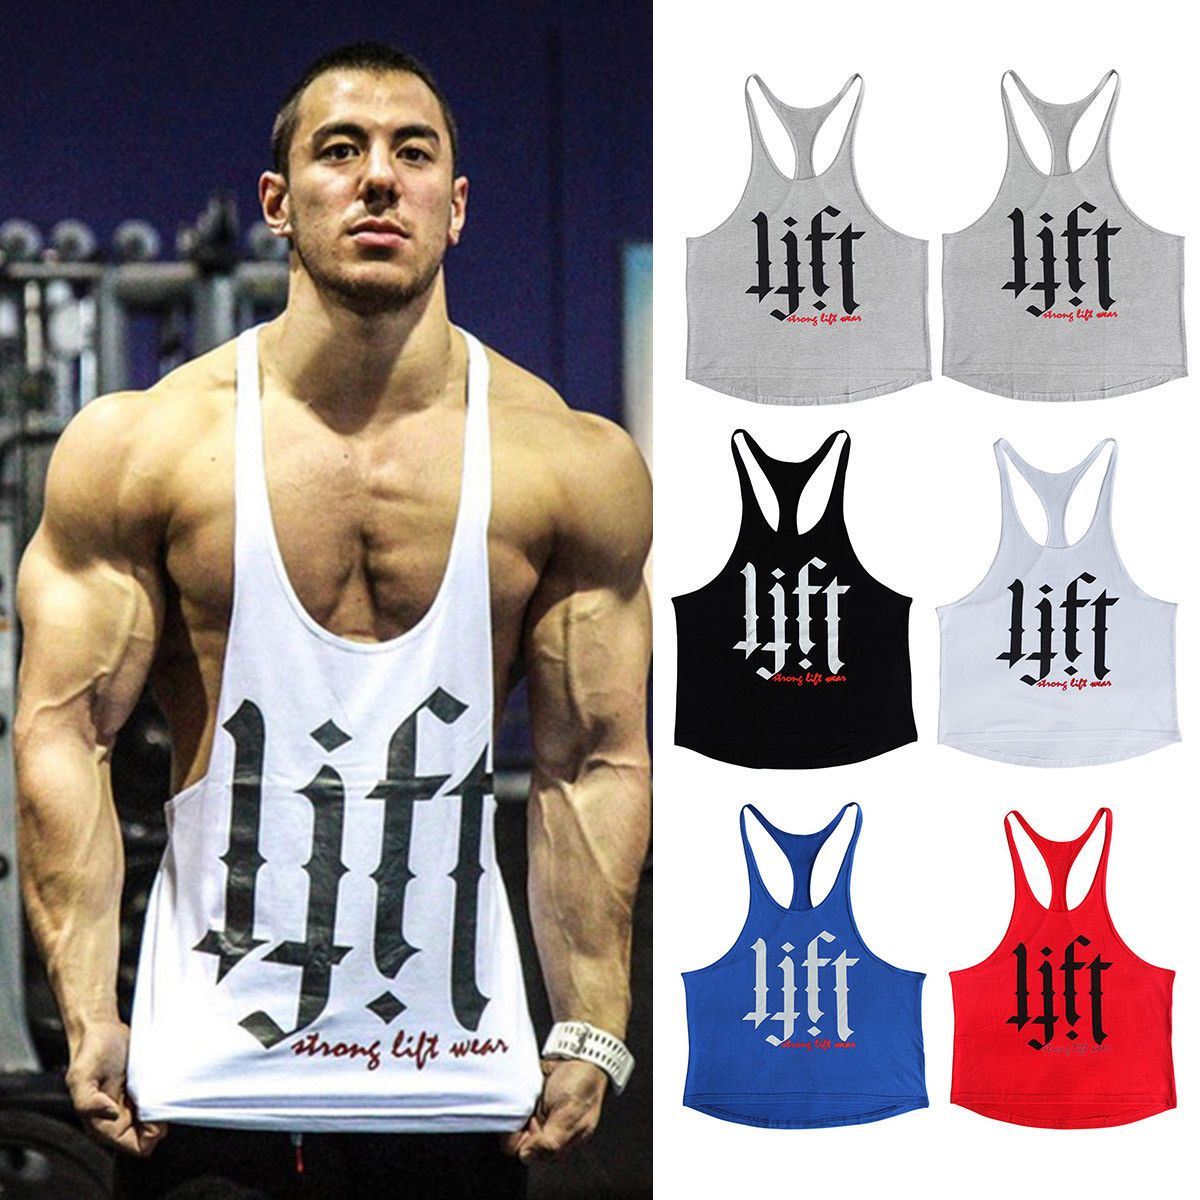 cff37576a39c02 Mens Lift Print Gym Muscle Shirt Tank Top Bodybuilding Sport Fitness Y-Back  Vest  ebay  Fashion